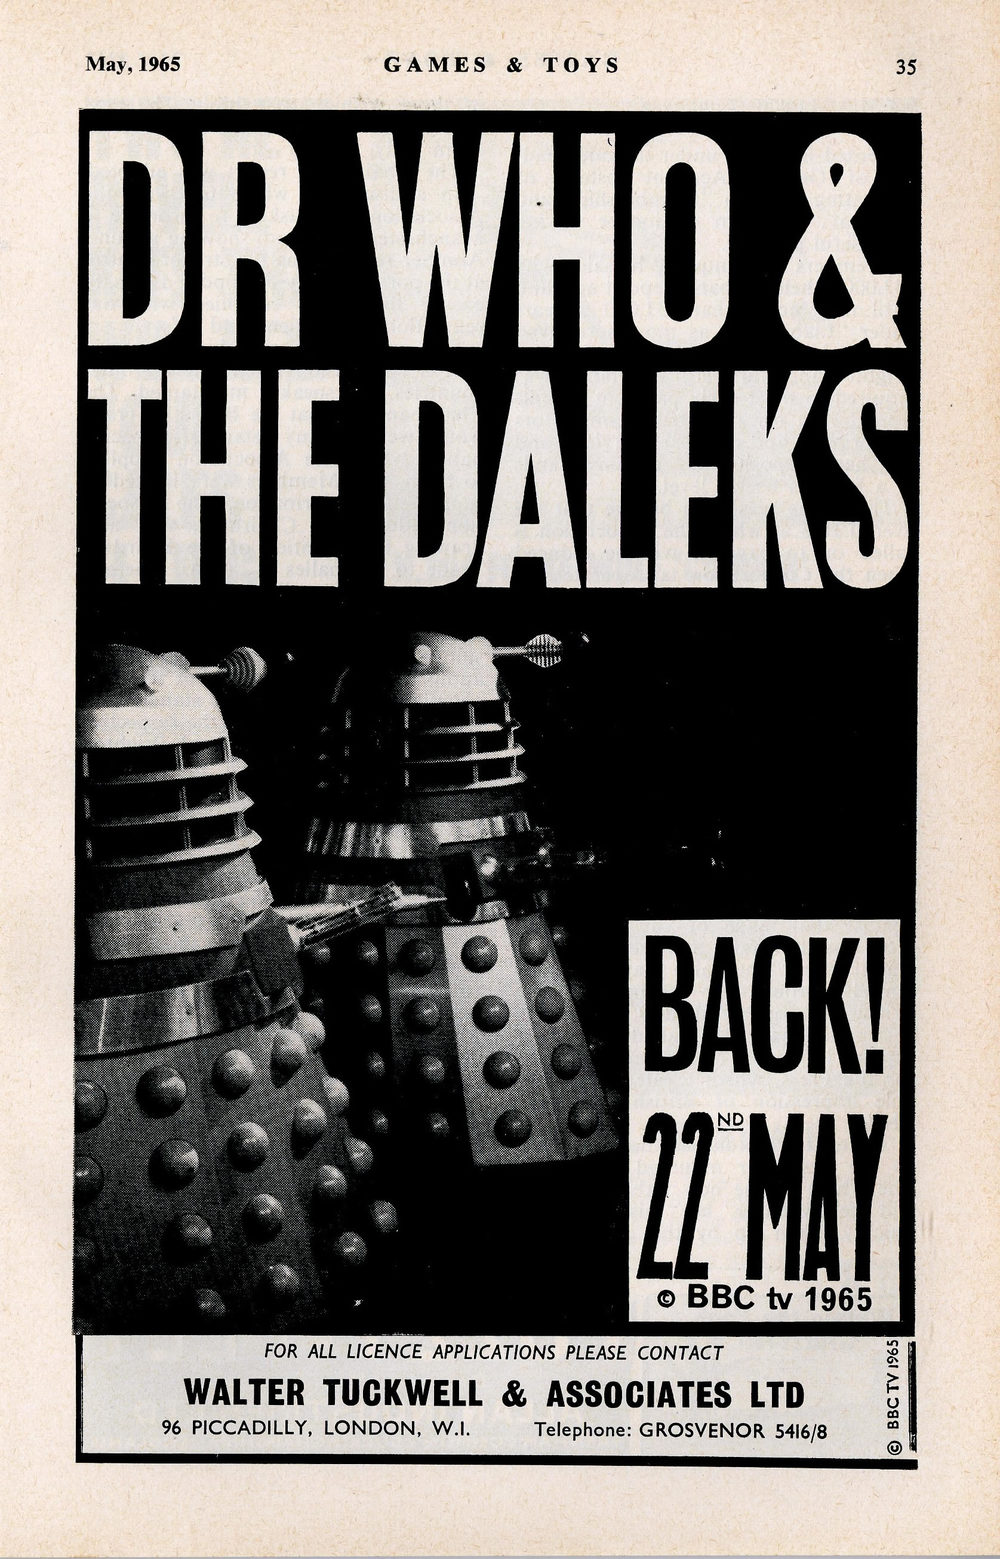 License applications ad. from Walter Tuckwell & Associates in the May 1965 edition of Games and Toys to coincide with the return of the Daleks in The Chase